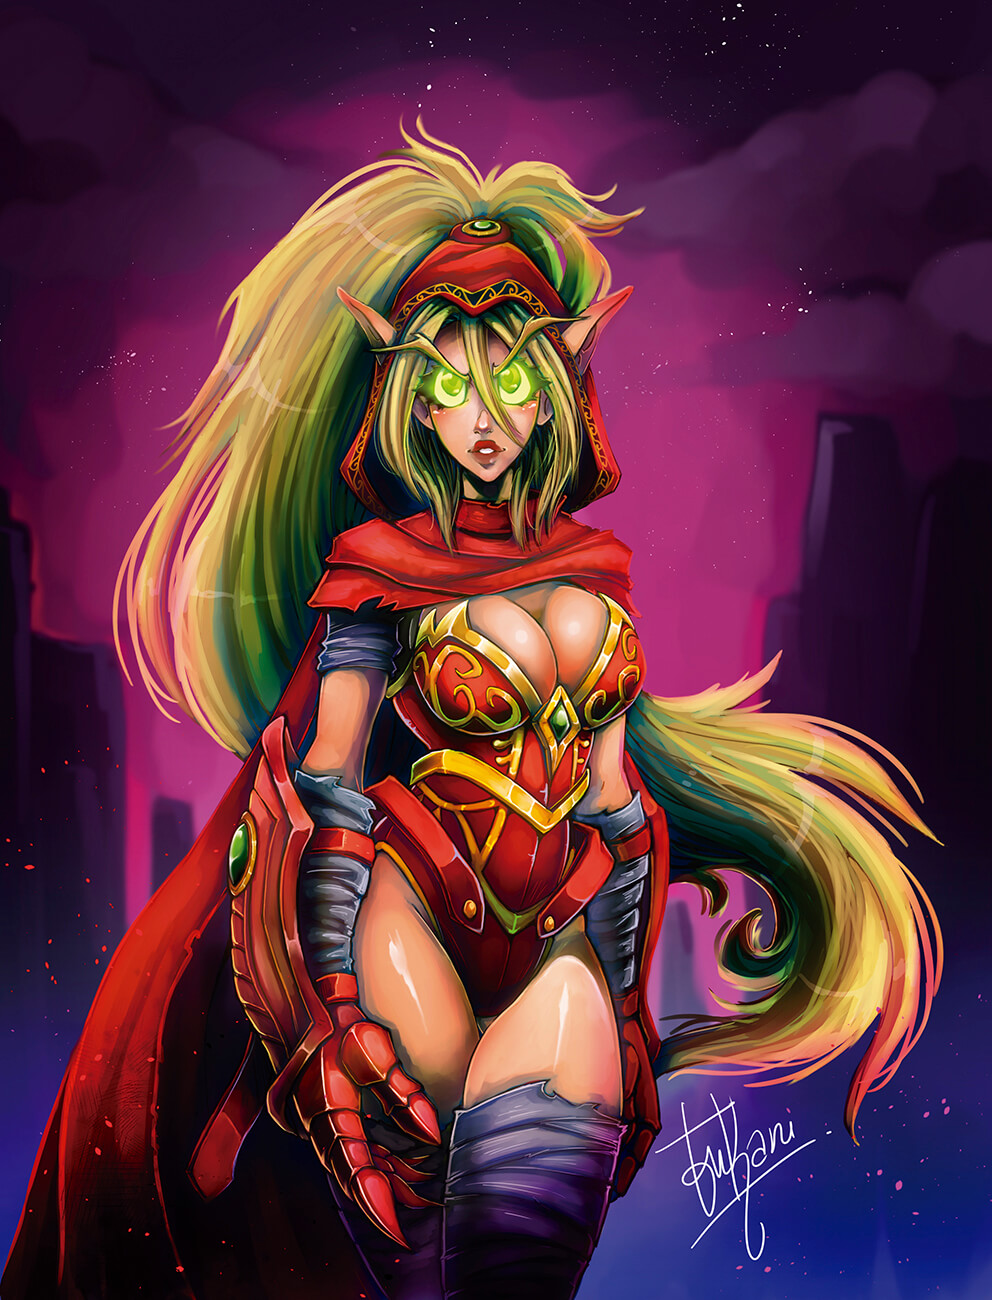 Valeera cleavages